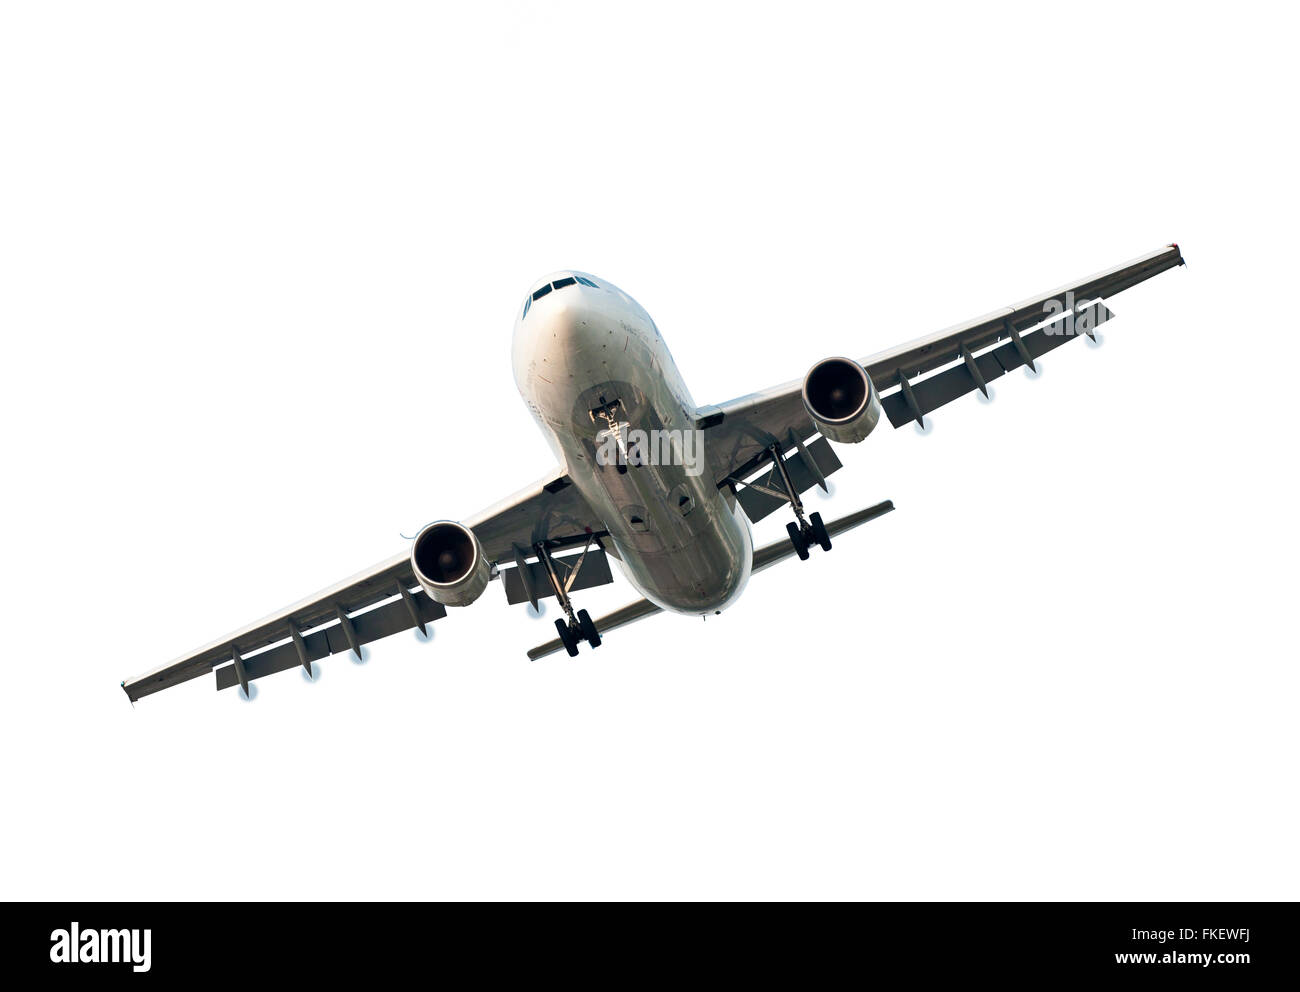 Large Commercial Airplane Isolated On White - Stock Image